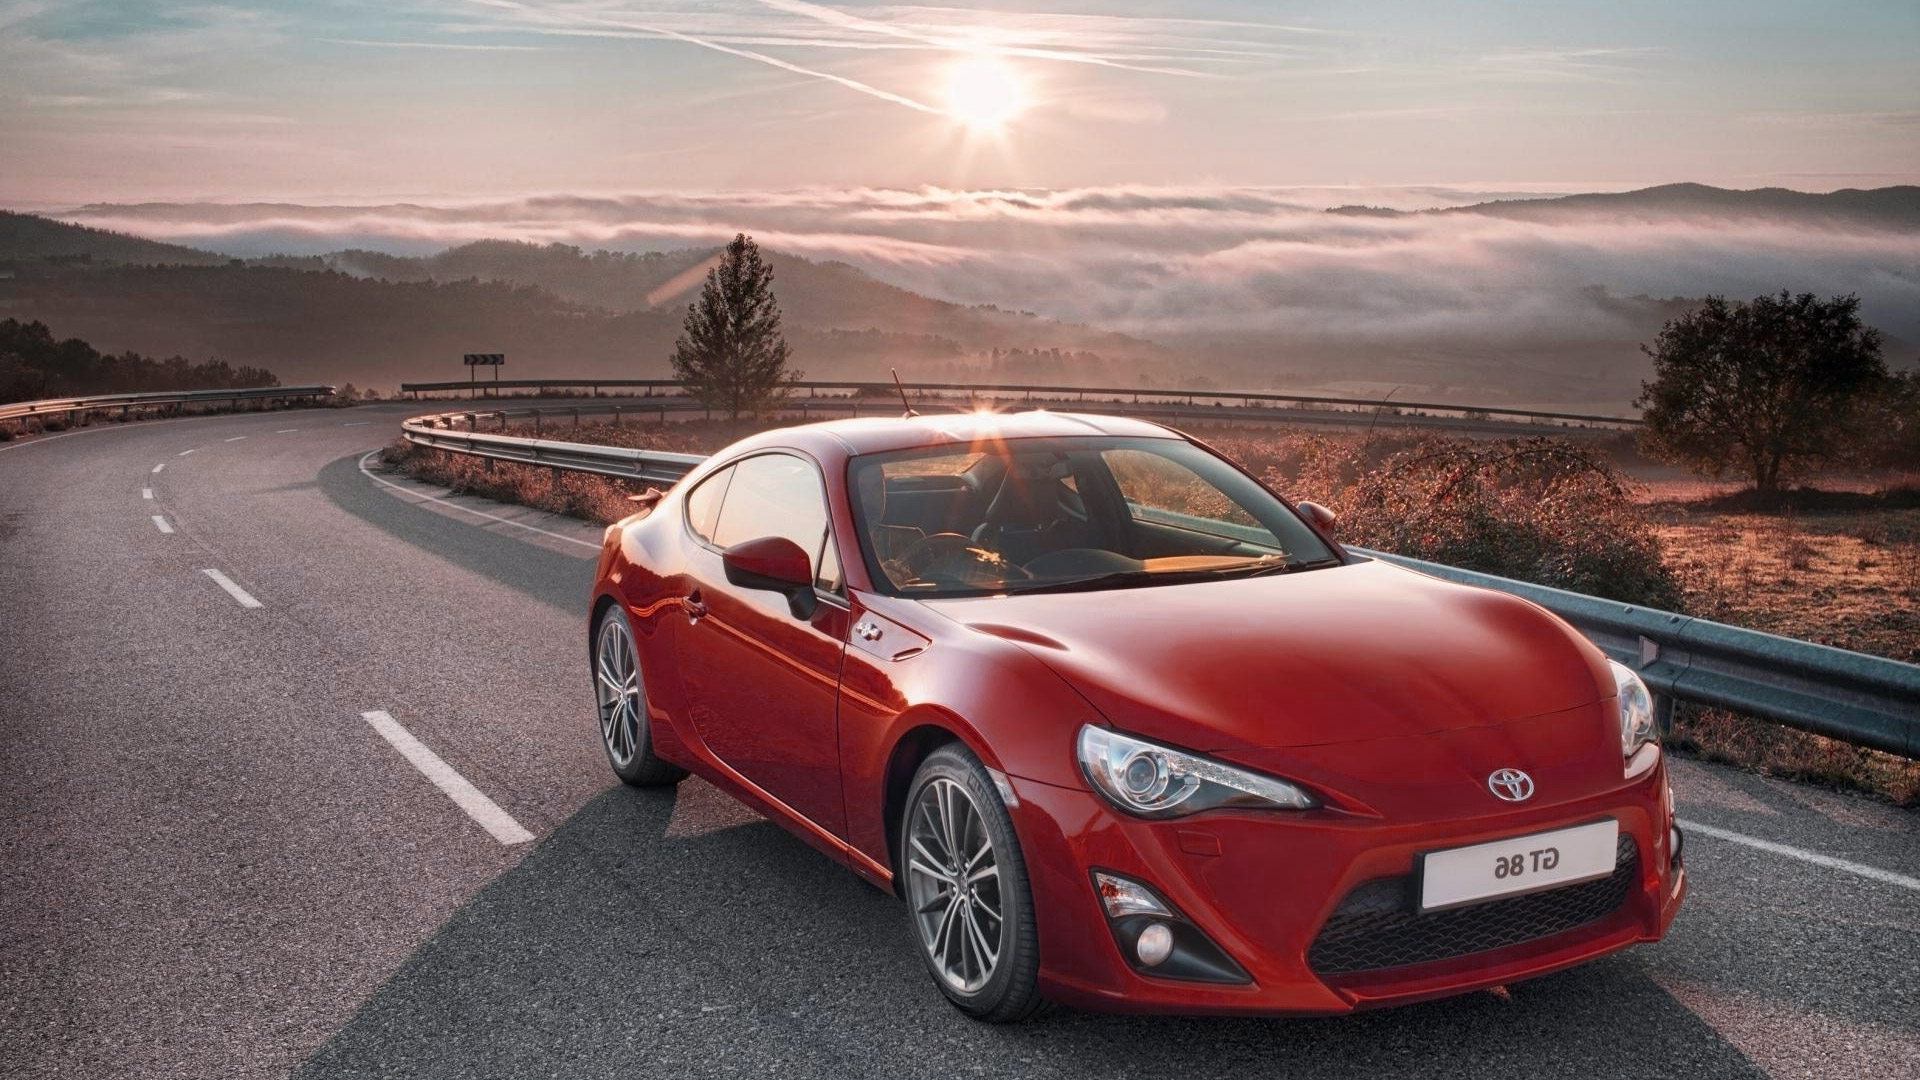 Toyota Gt 86 Hd Wallpaper - Toyota 86 Price South Africa , HD Wallpaper & Backgrounds